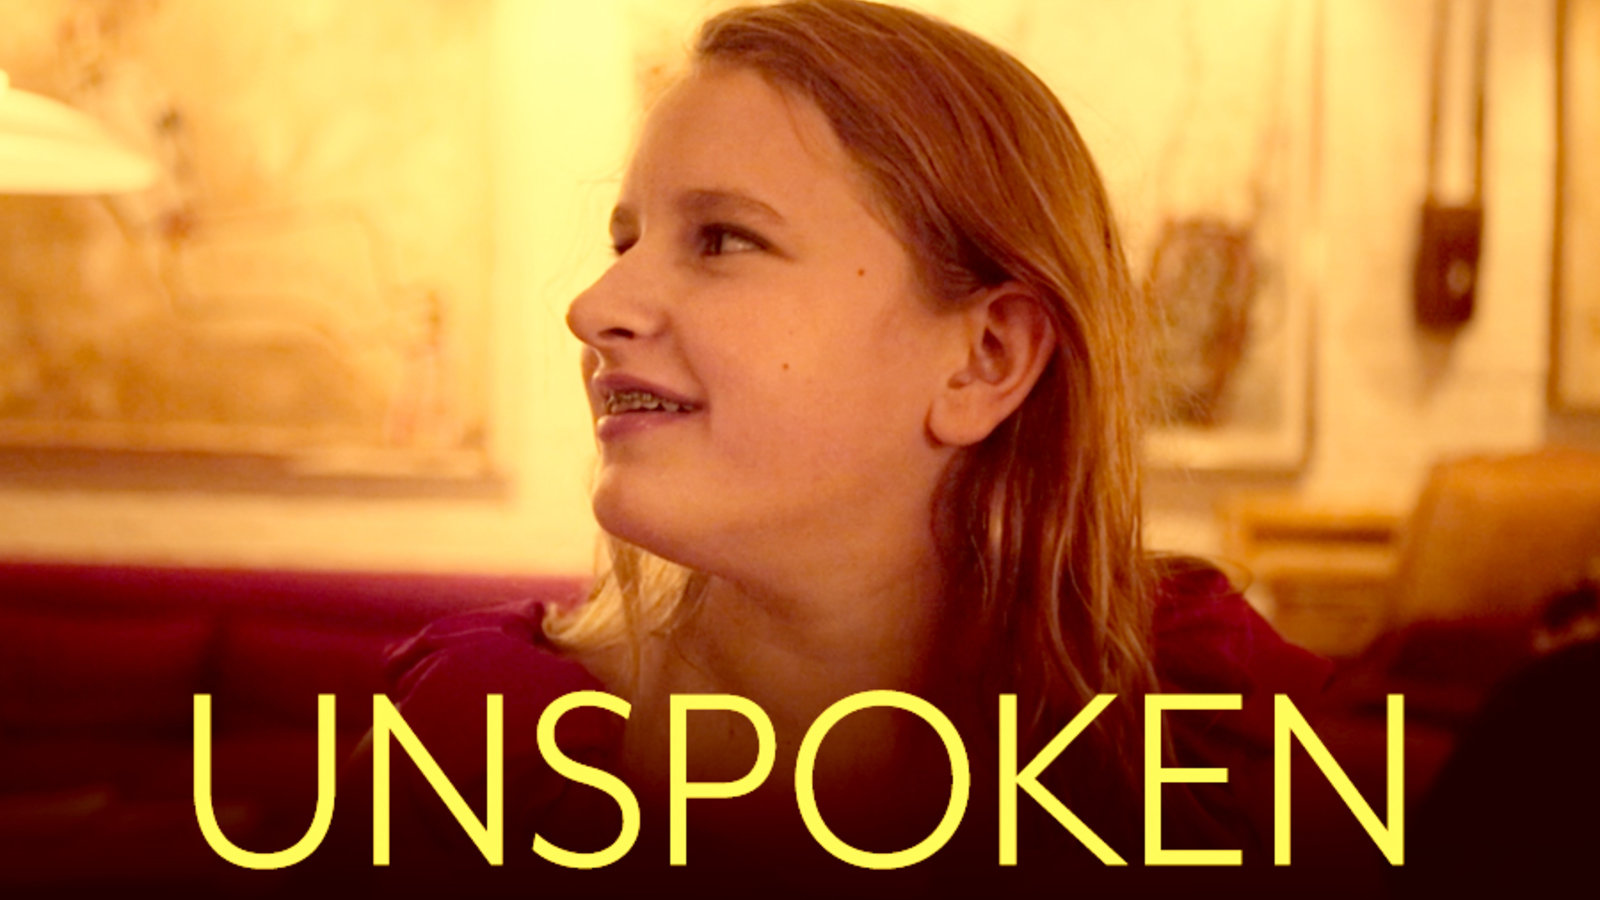 Unspoken - The Dynamic Life of an Autistic Teenager